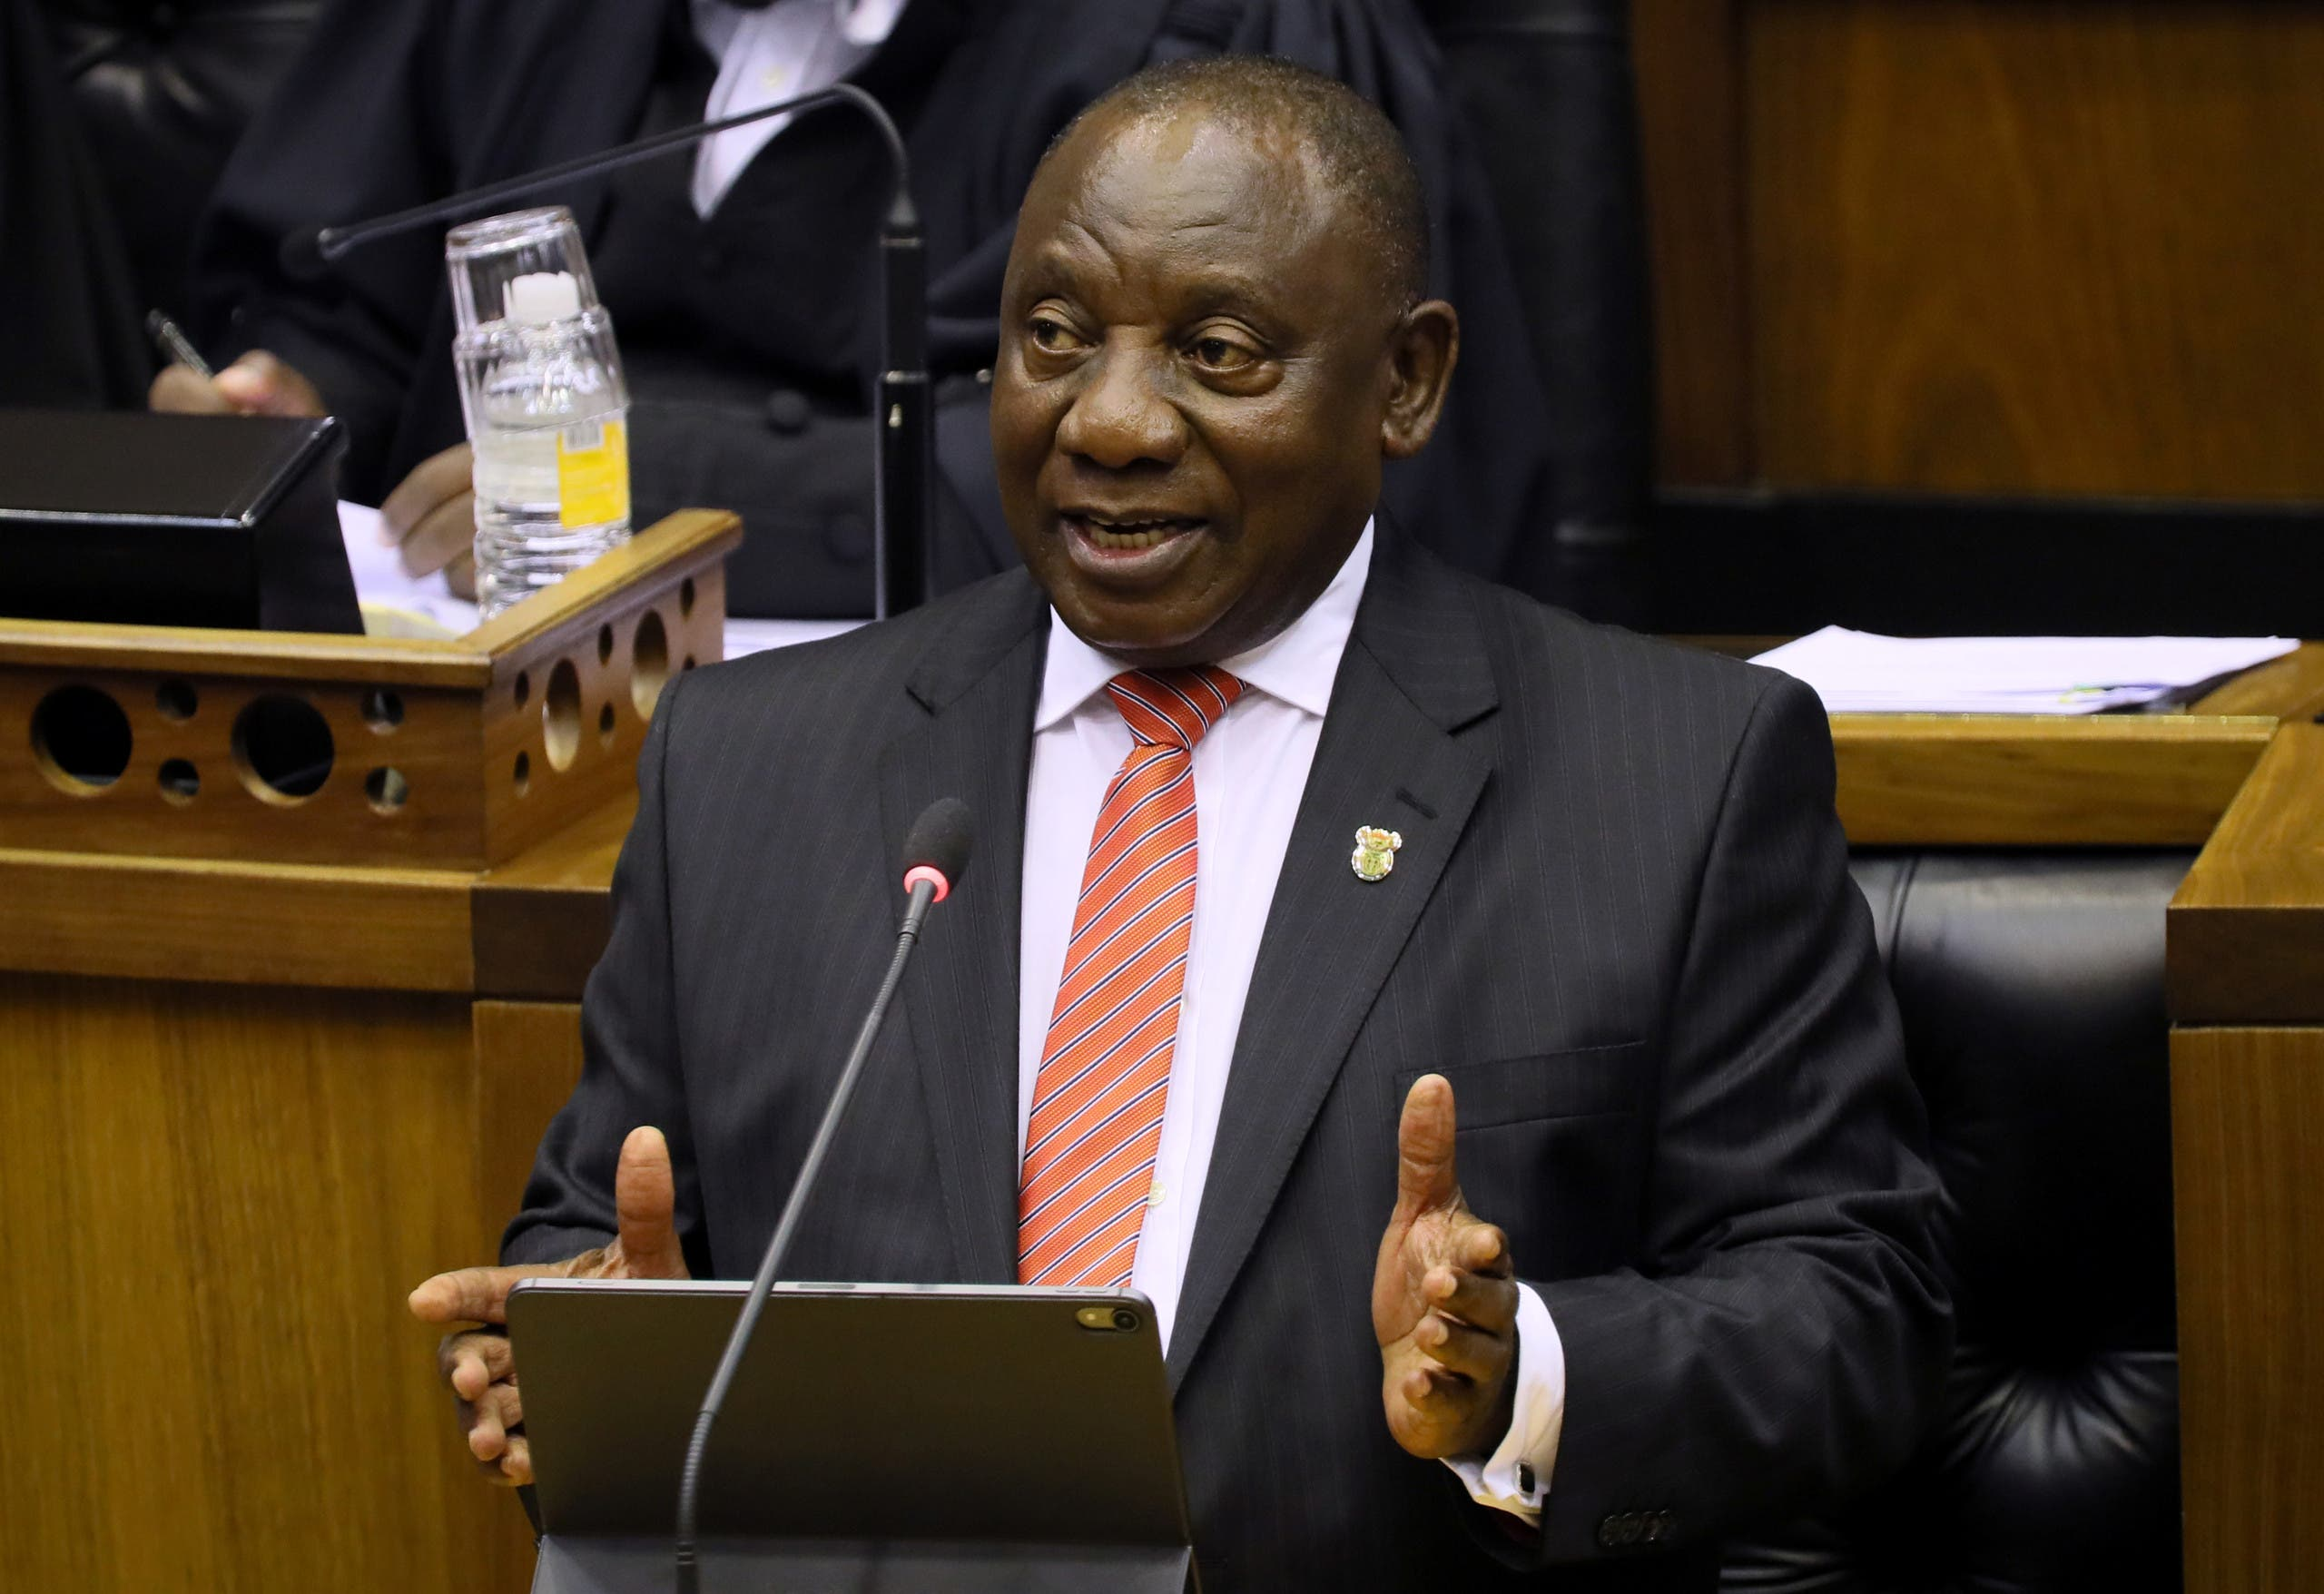 South African President Cyril Ramaphosa. (File photo: Reuters)